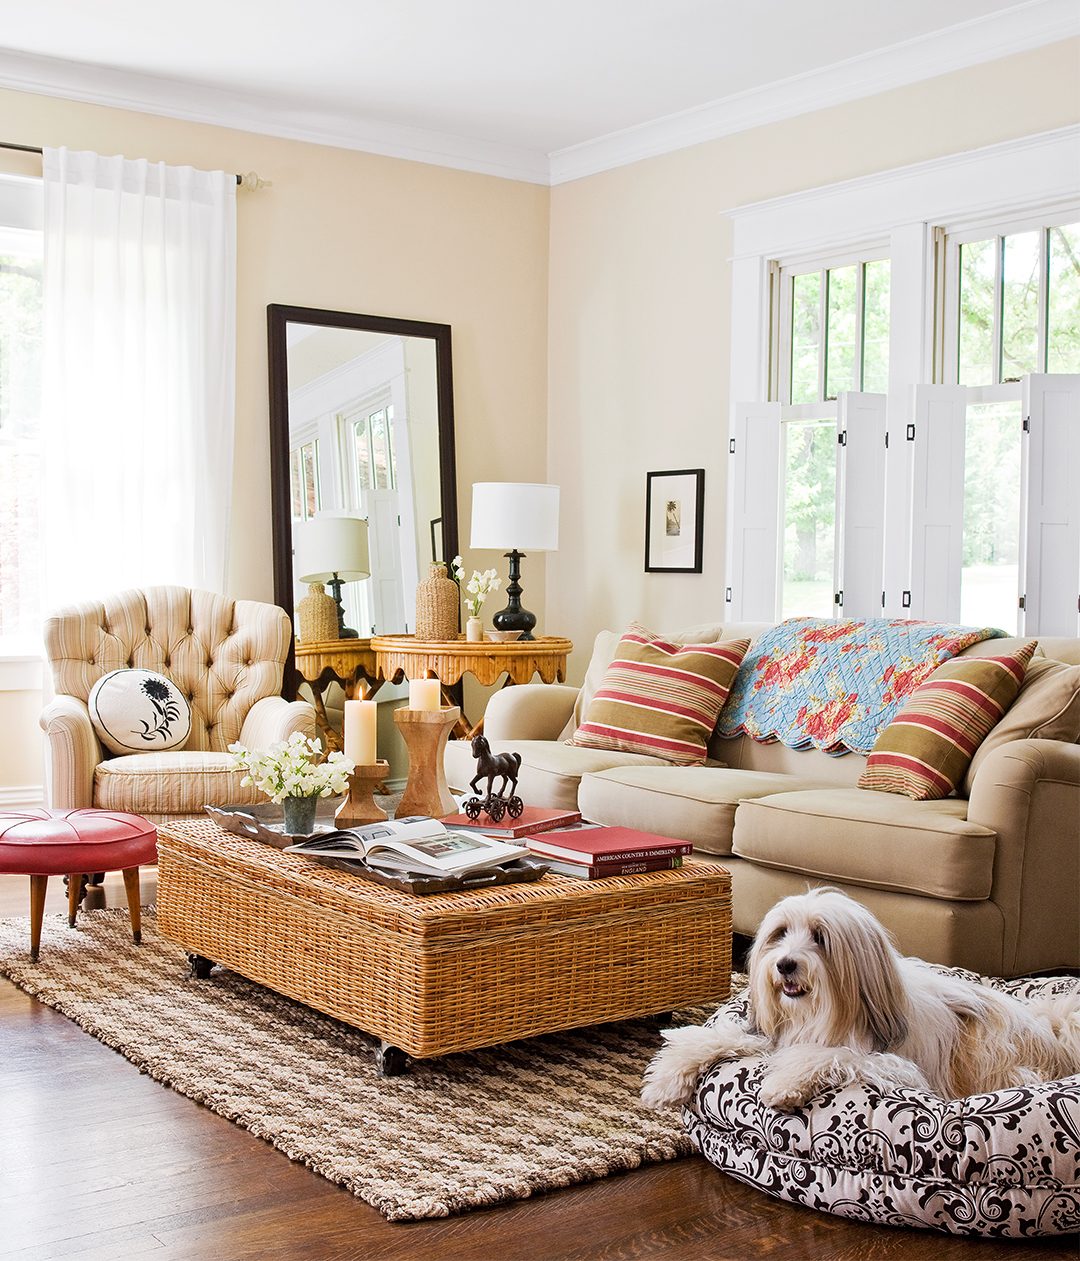 living room dog furniture sofa chair mirror rug